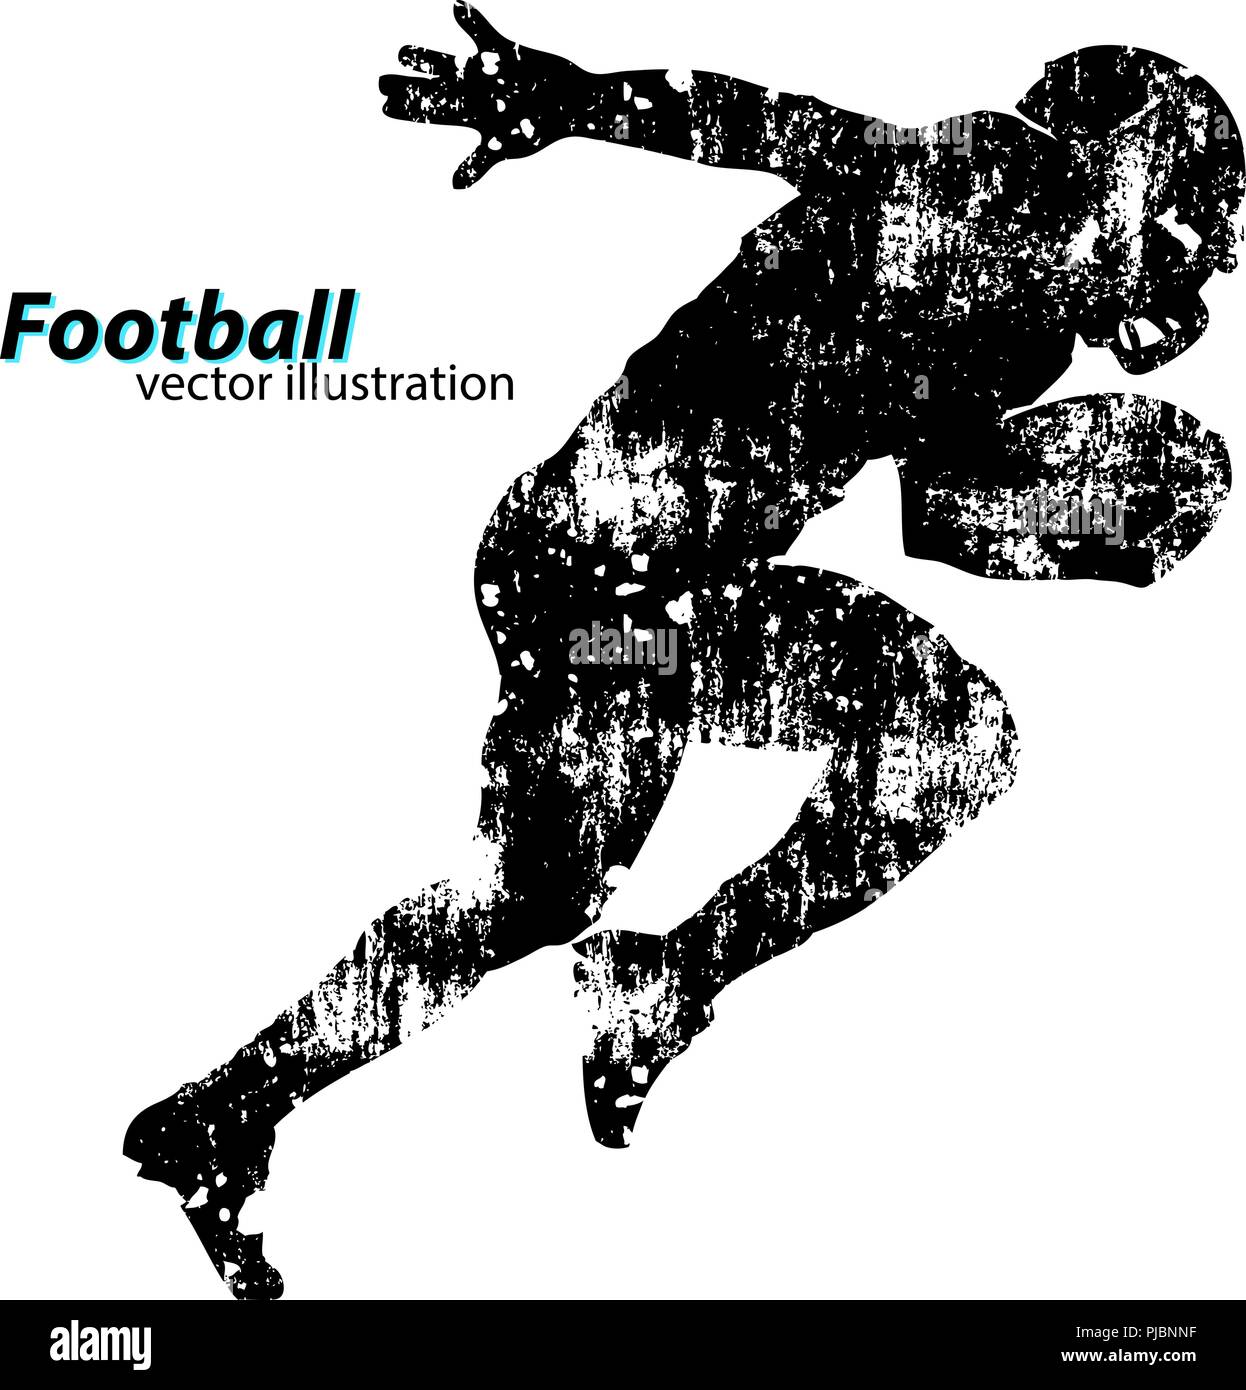 silhouette of a football player. Background and text on a separate layer, color can be changed in one click. Rugby. American football - Stock Image